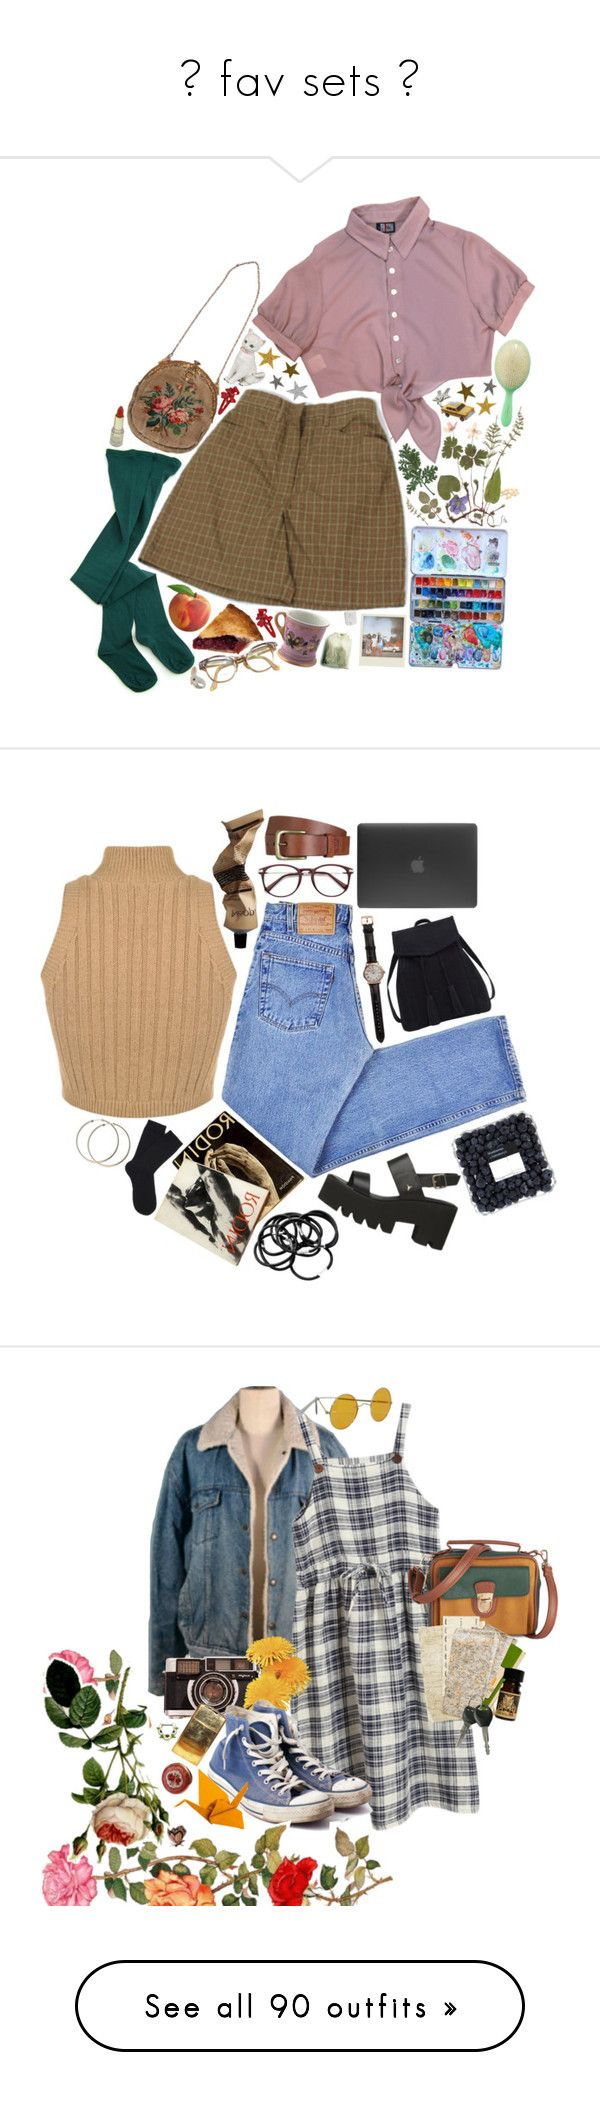 """✧ fav sets ✧"" by bx-sxnnt ❤ liked on Polyvore featuring Retrò, My Mum Made It, Mimco, Nach, CB2, Levi's, Aesop, Will Leather Goods, Shinola and Incase"